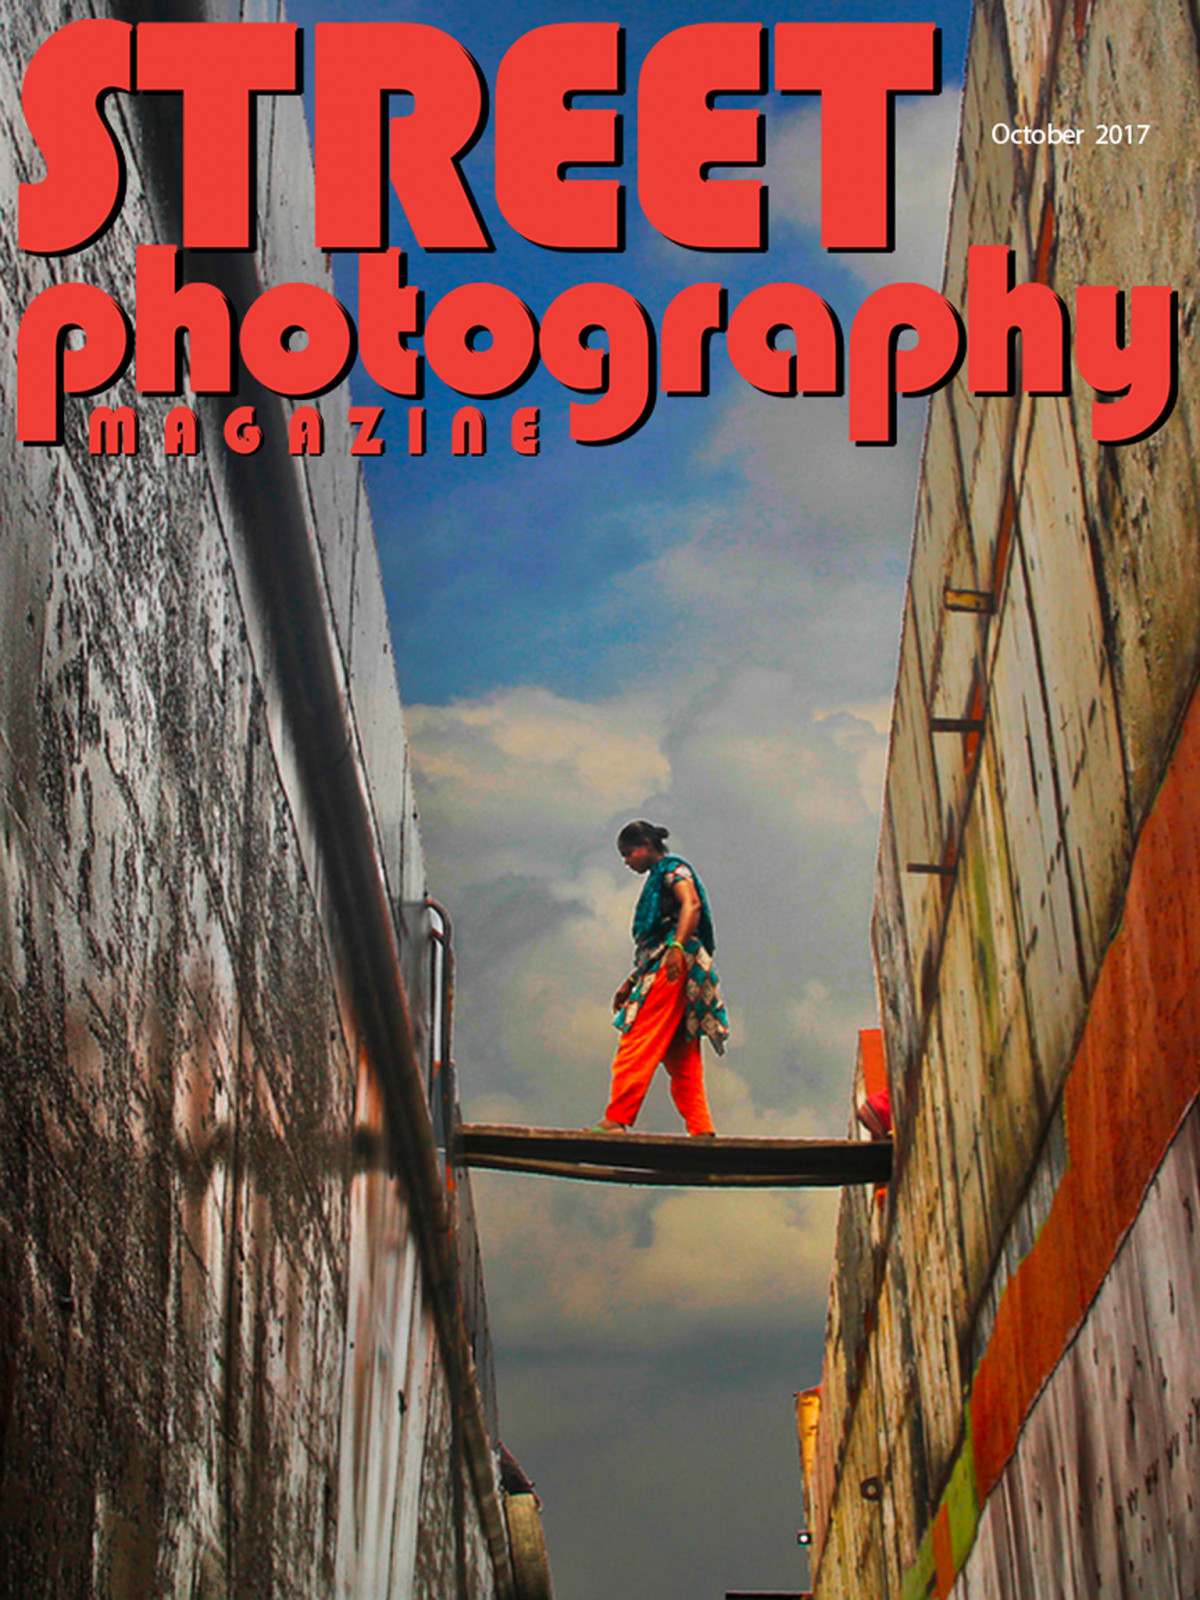 The October issue of Street Photography Magazine is here